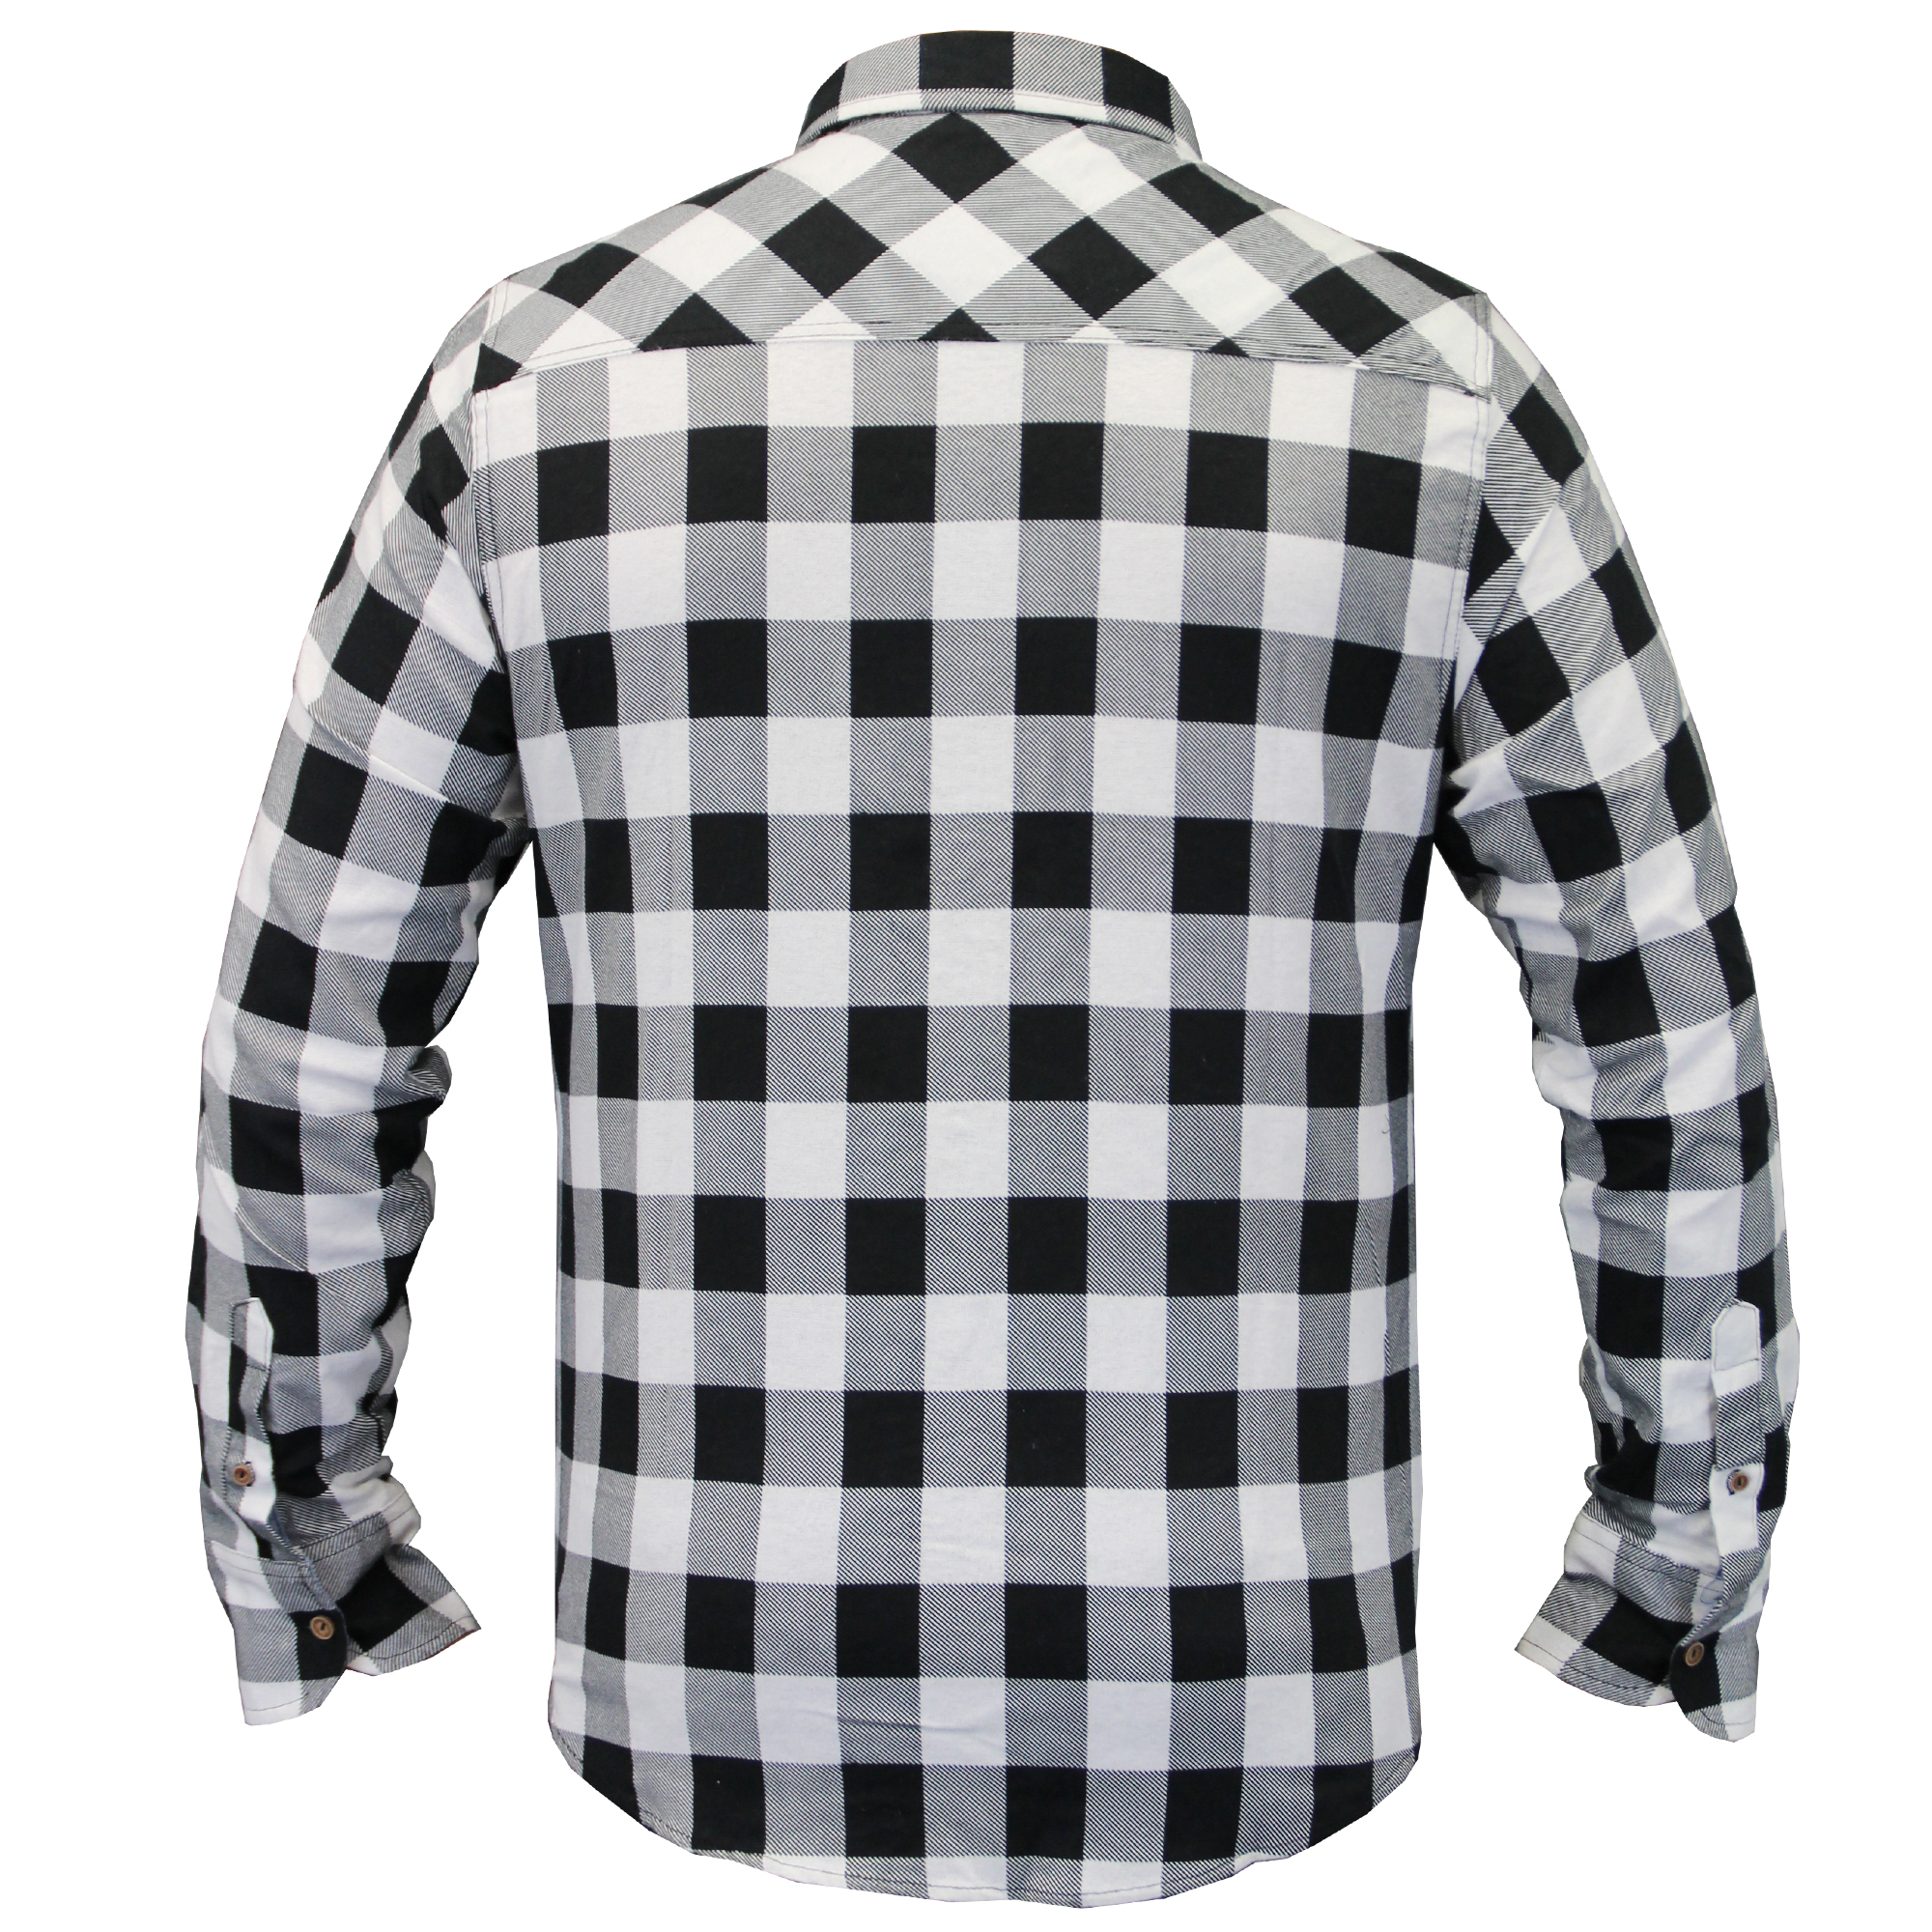 Mens-Checked-Tartan-Long-Sleeved-Collared-Shirt-By-Brave-Soul miniatuur 18